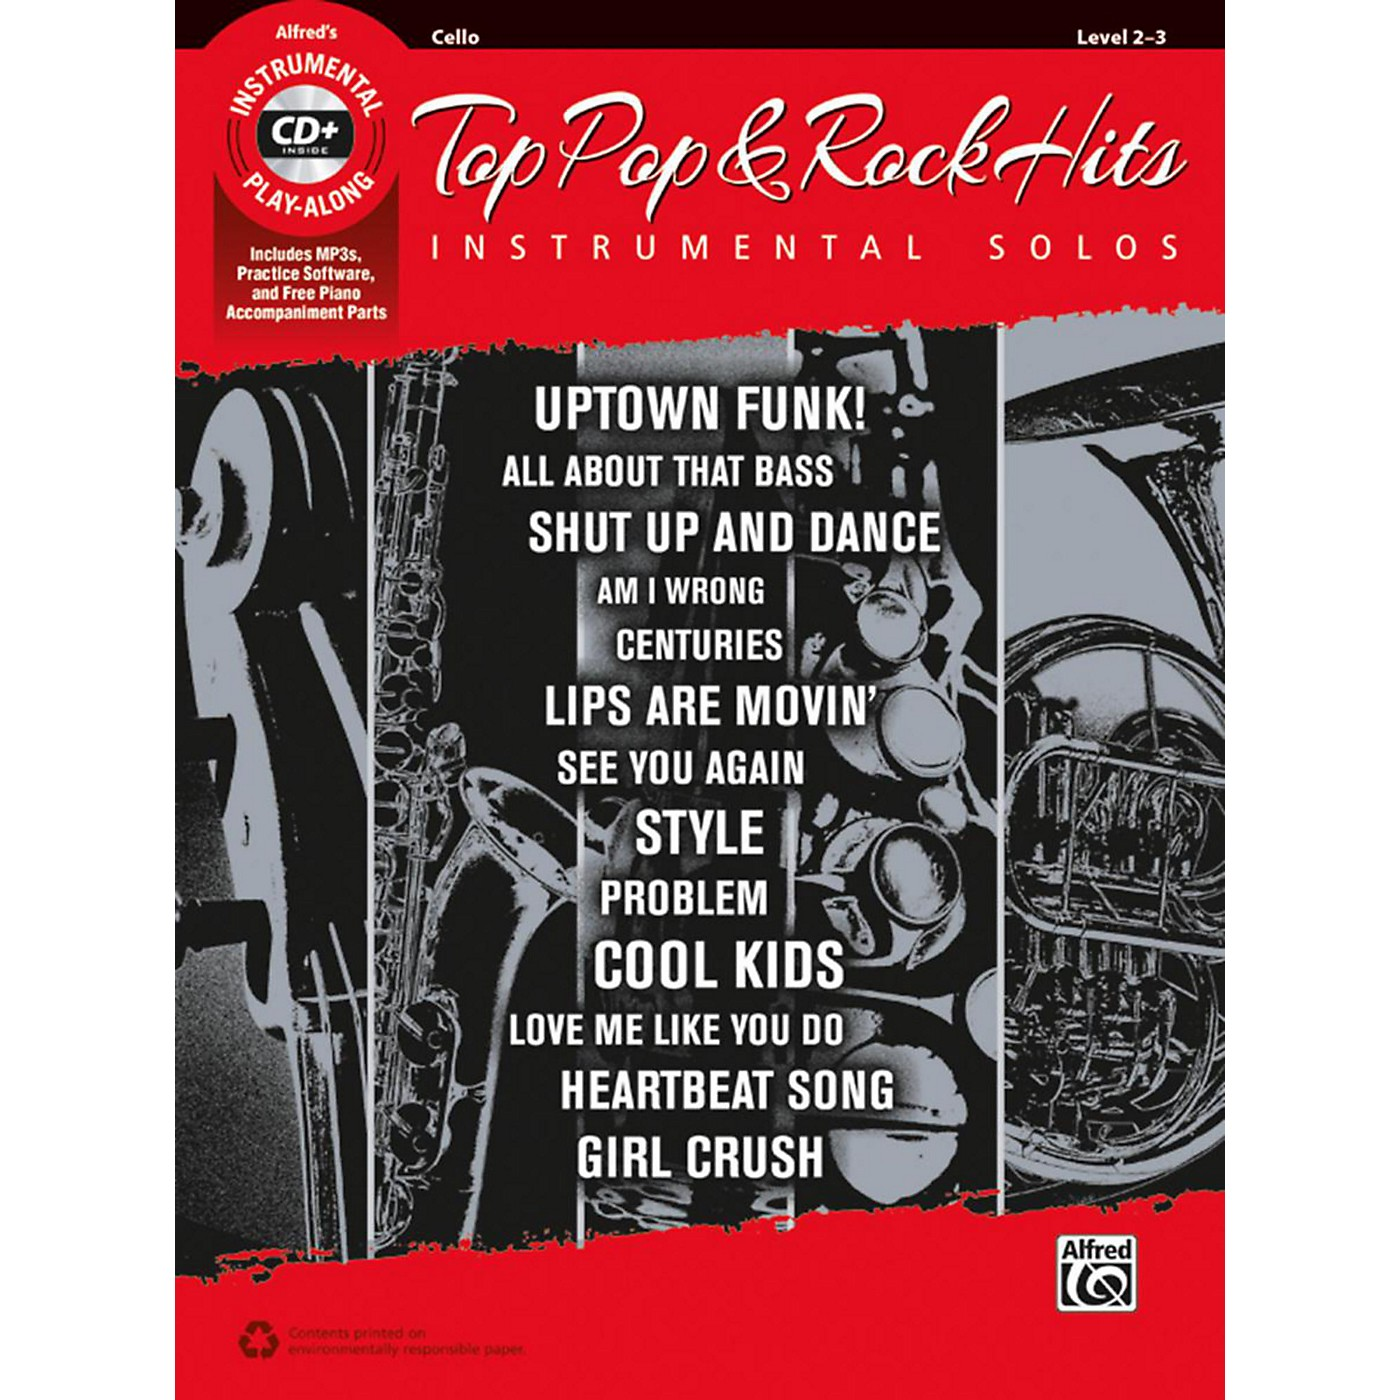 Alfred Top Pop & Rock Hits Instrumental Solos for Strings Cello Book & CD thumbnail